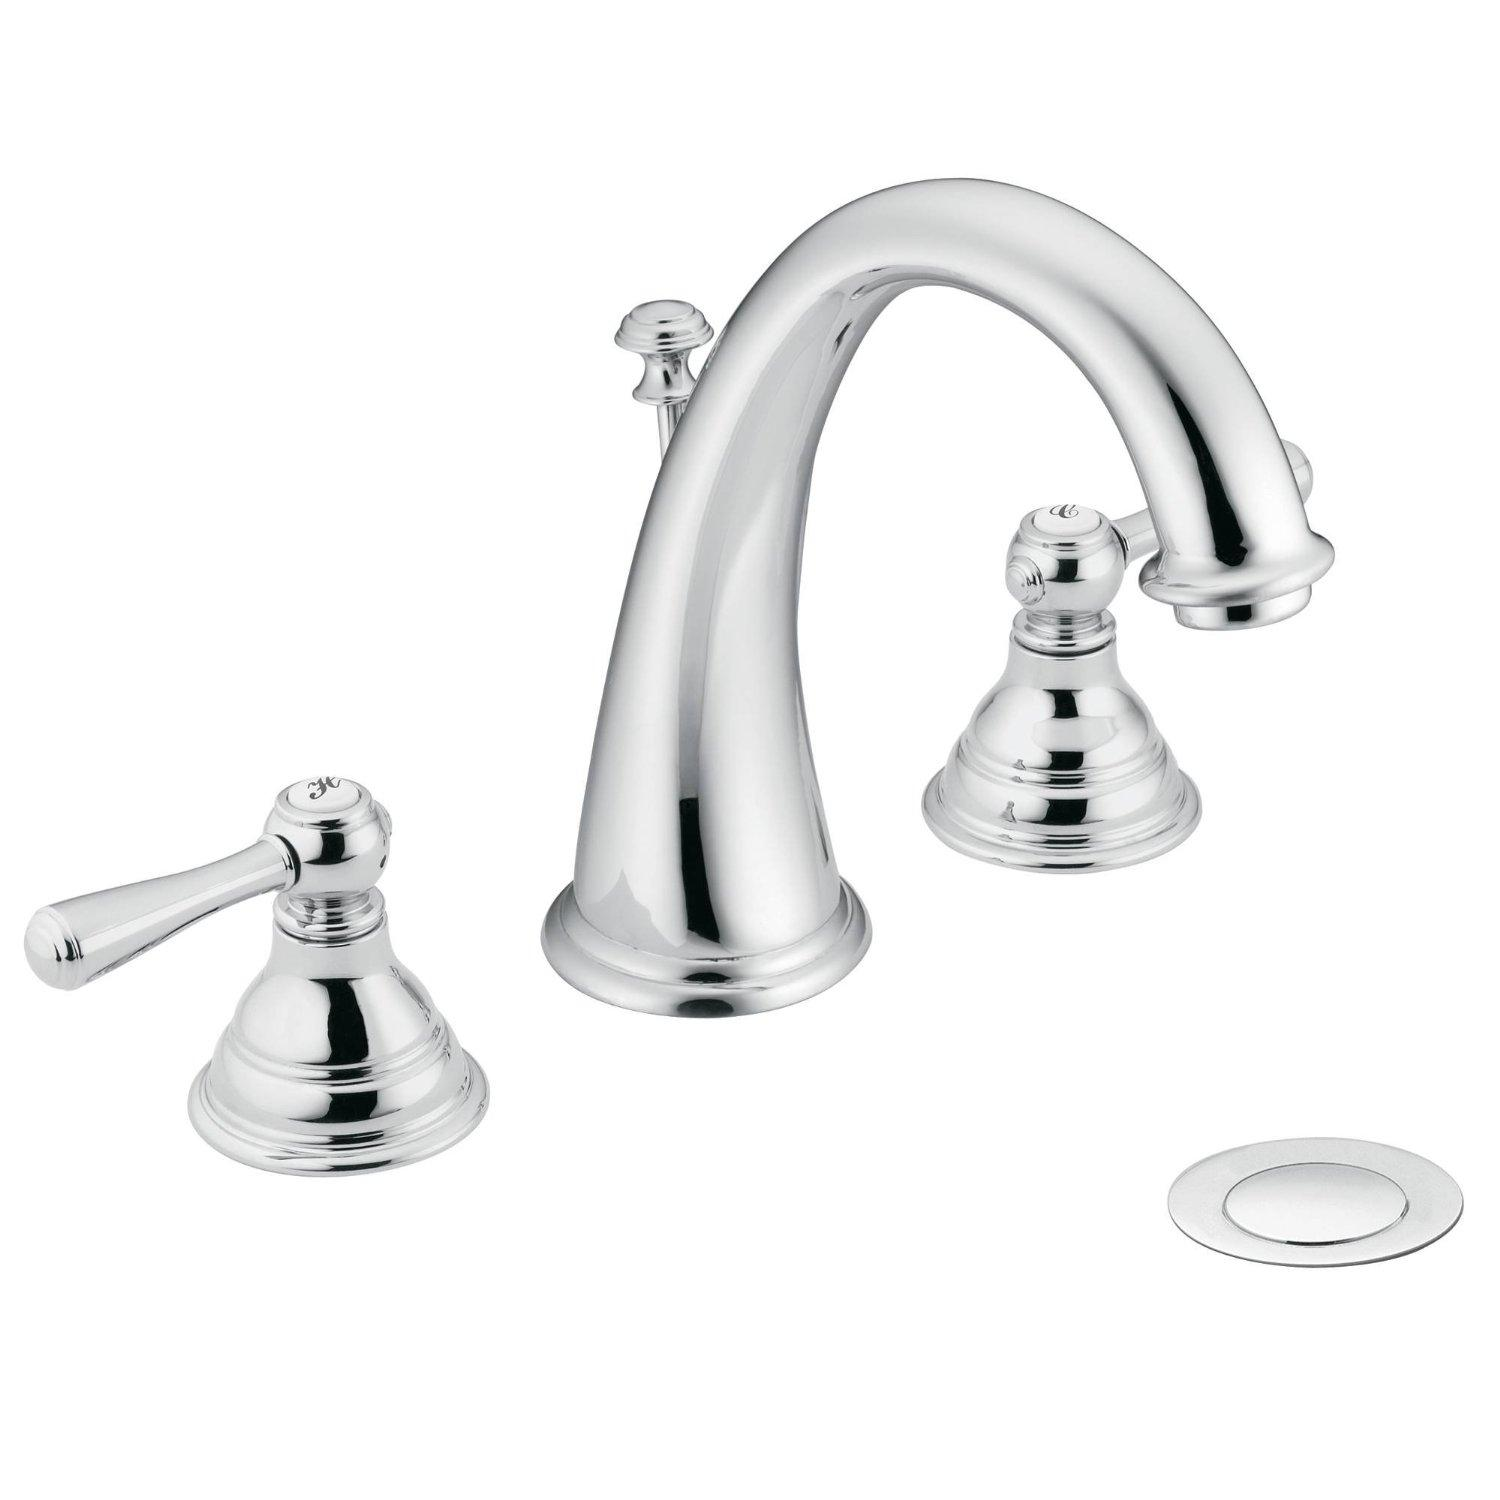 Wondrous Moen T6125 Kingsley Two Handle Widespread High Arc Bathroom Faucet Valve Required Chrome Download Free Architecture Designs Embacsunscenecom